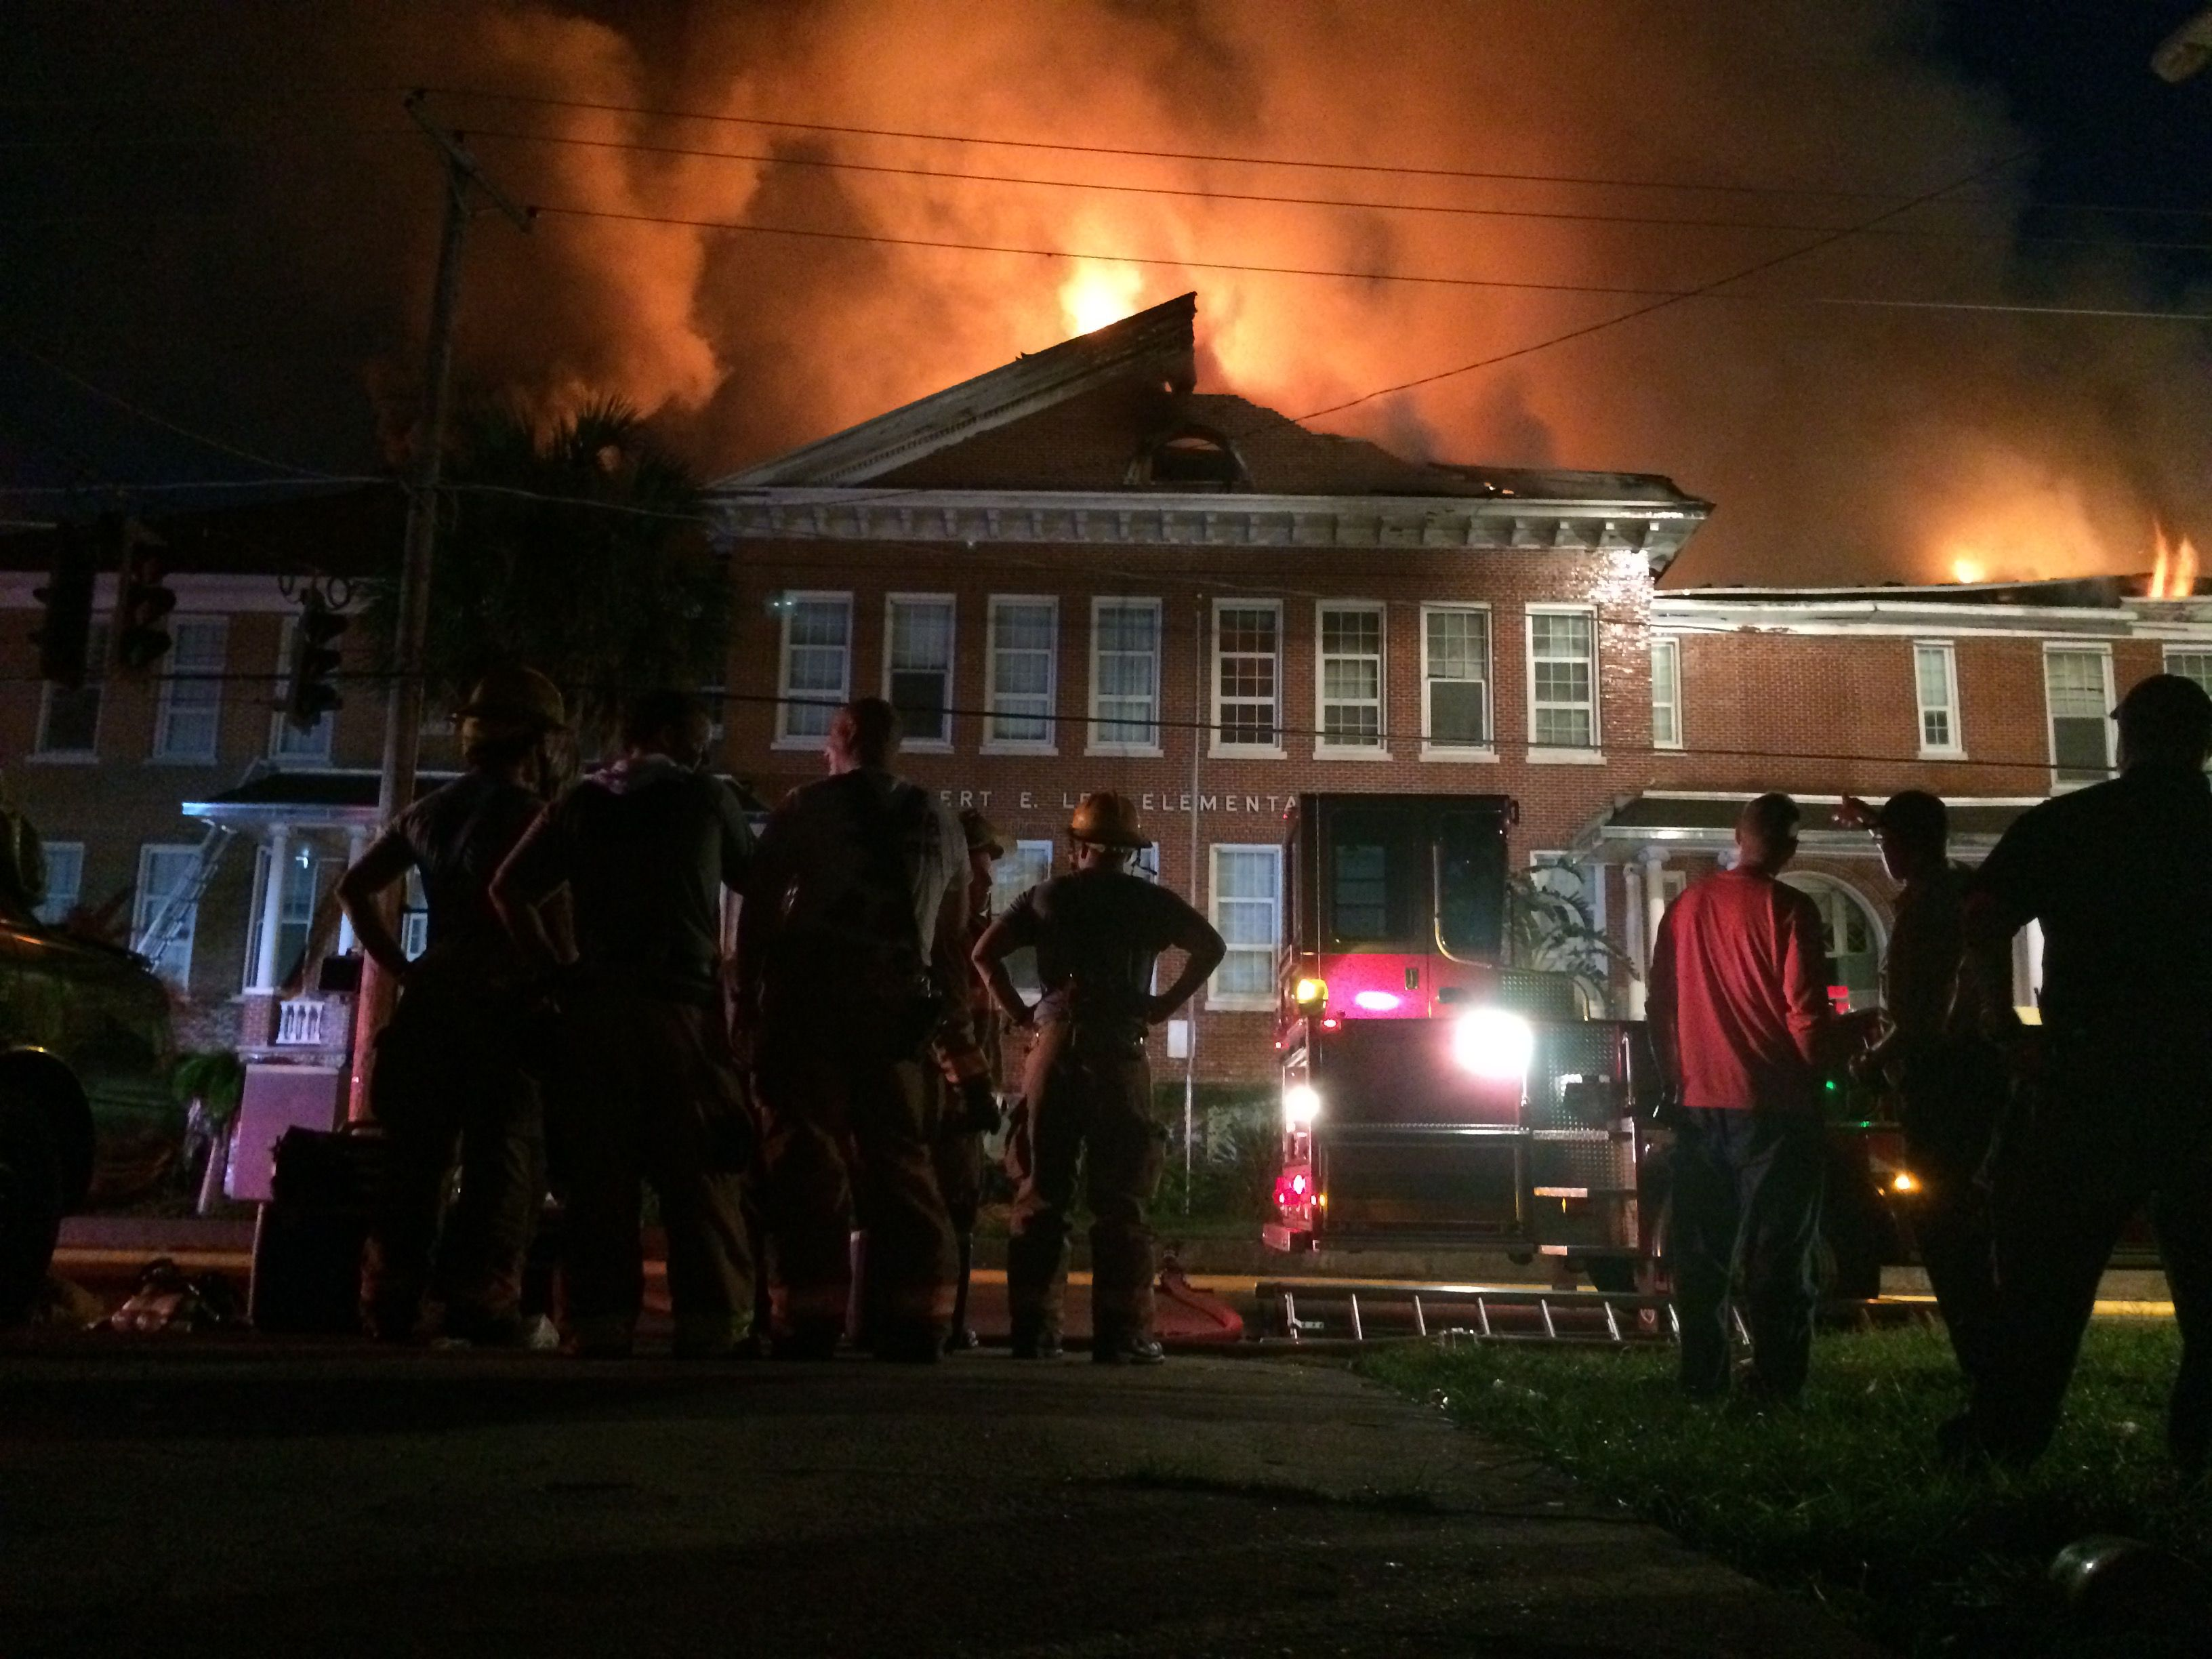 A photo of flames coming out the top of the Robert E. Lee Elementary in Tampa, Florida.